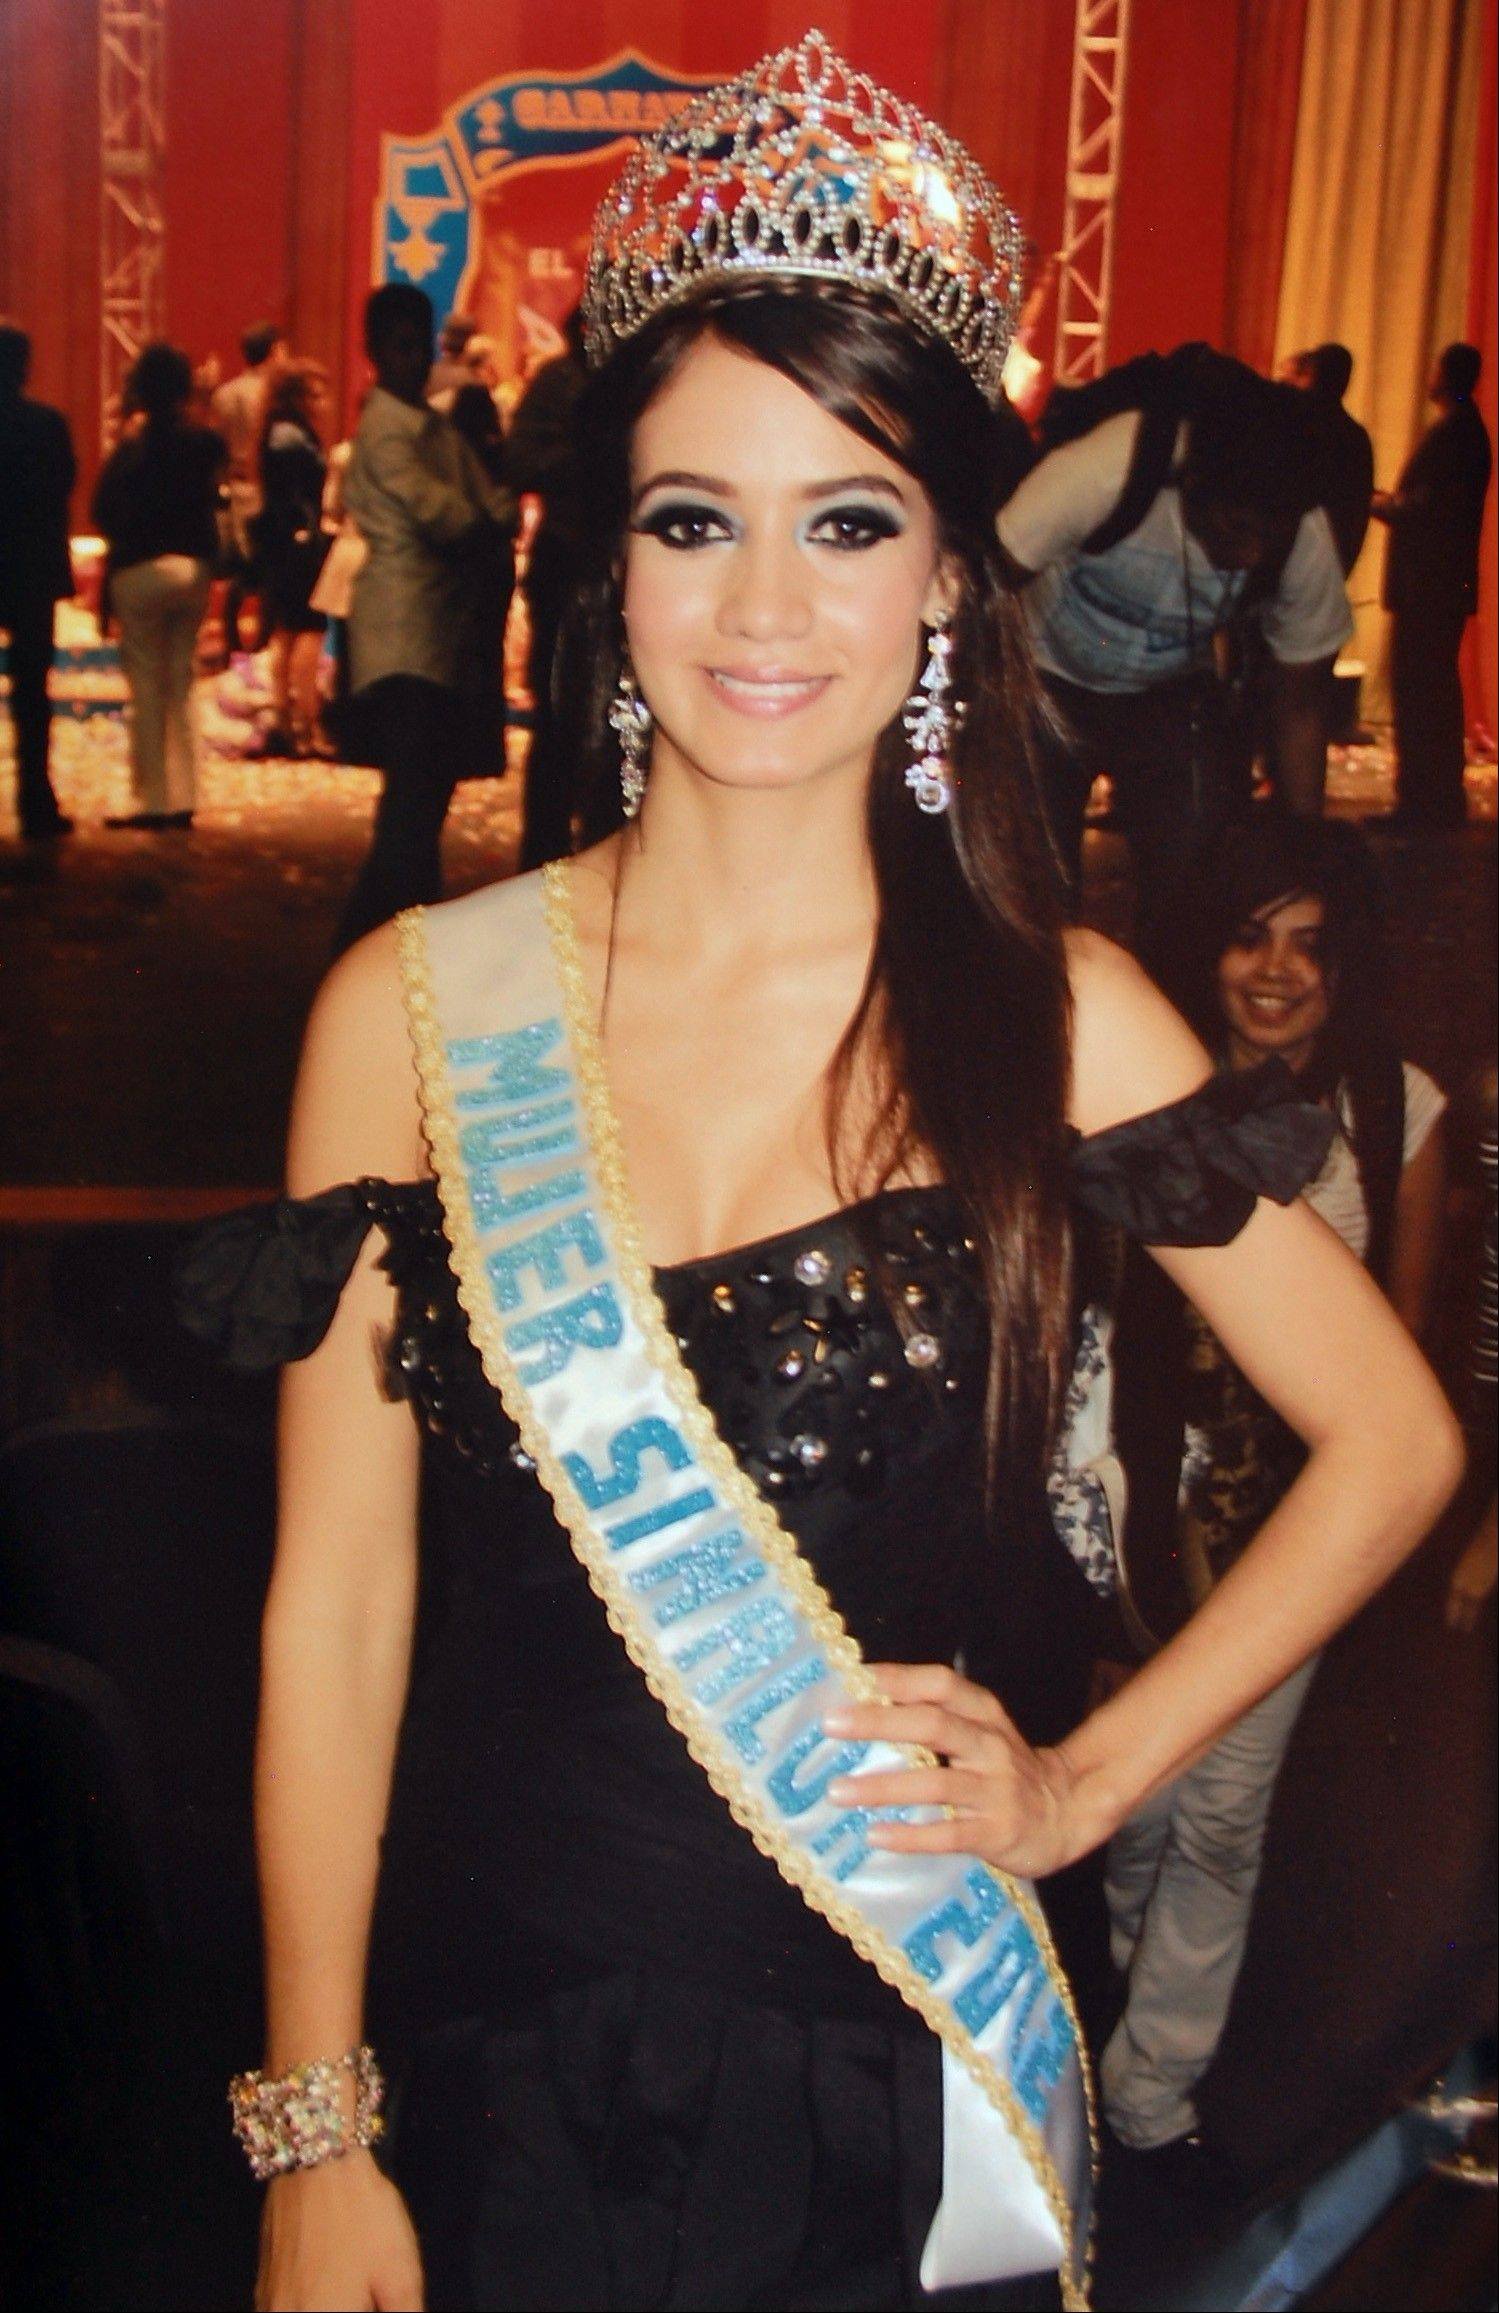 no escape from narcos for mexican beauty queen